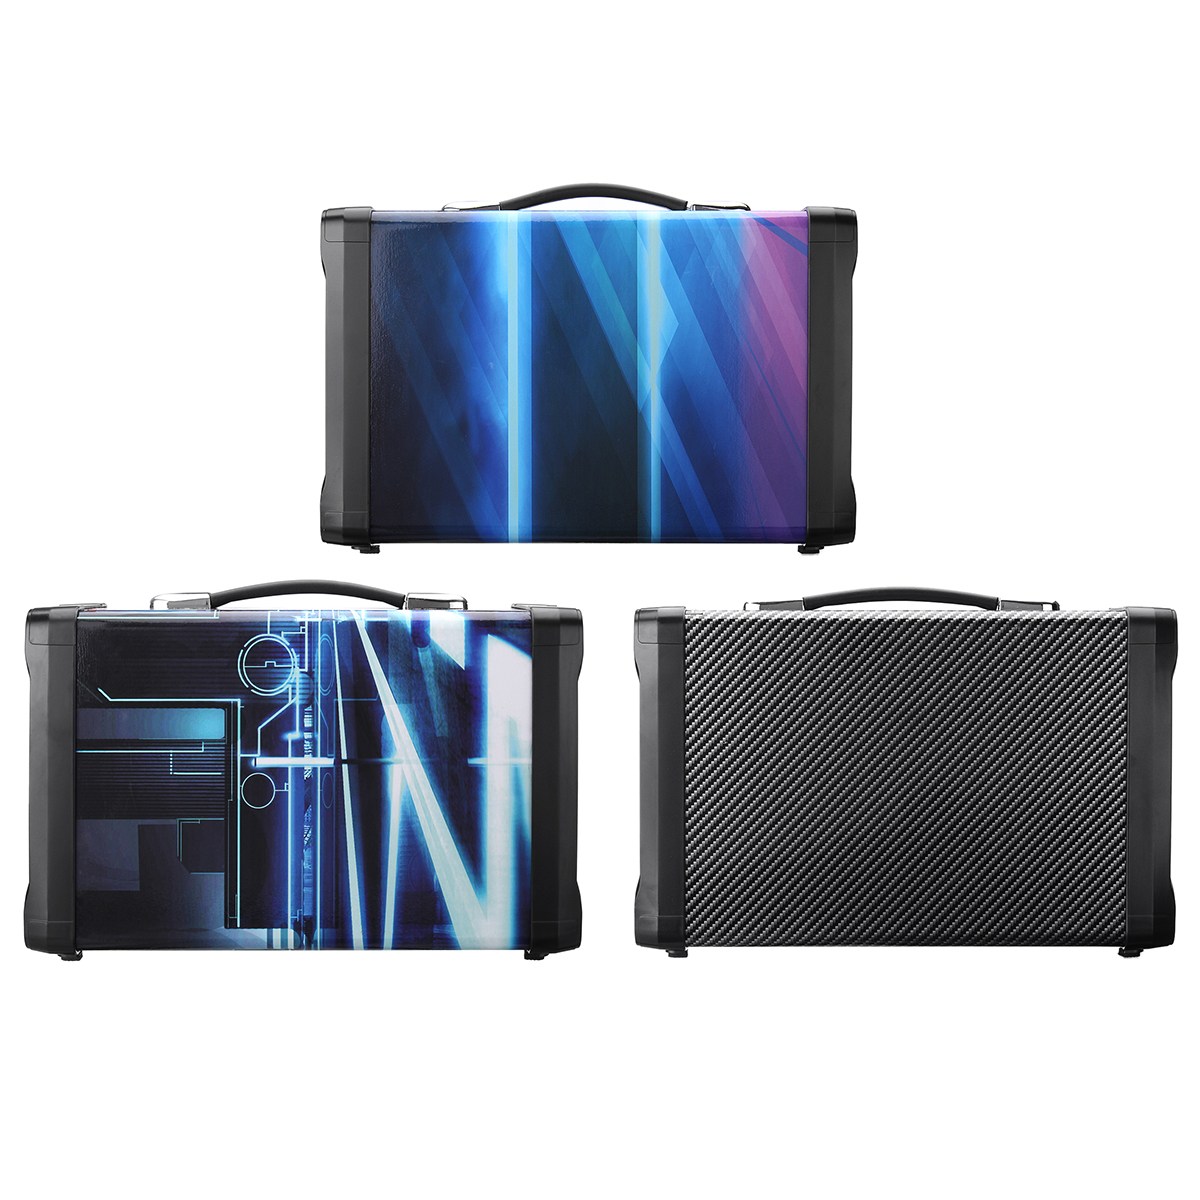 MS-158BT Outdoor Wireless Bluetooth Stereo Speaker AUX USB TF FM Radio